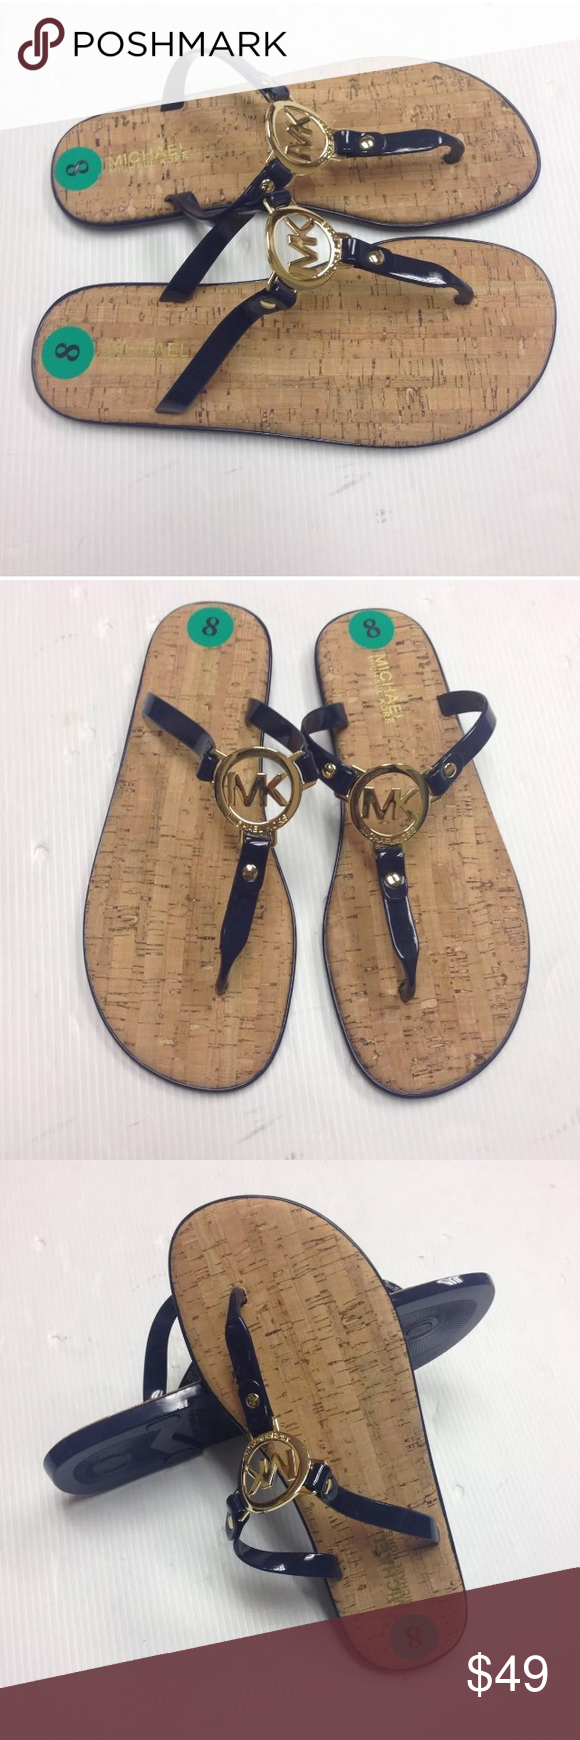 "Michael Kors Jelly Cork Navy Blue Sandals 100 % Authentic New Without Box Michael Kors Jelly Navy Blue Flip Flop Sandals. Women's Size 8. PVC upper. Cork footbed. Rubber outsole. Polished MK signature gold-tone logo charm. Thong post MK Logo stamped ""Michael Kors""   MK Logo surrounded by 3 gold studs   Smoke Free and Pet Free Environment. MICHAEL Michael Kors Shoes Sandals"